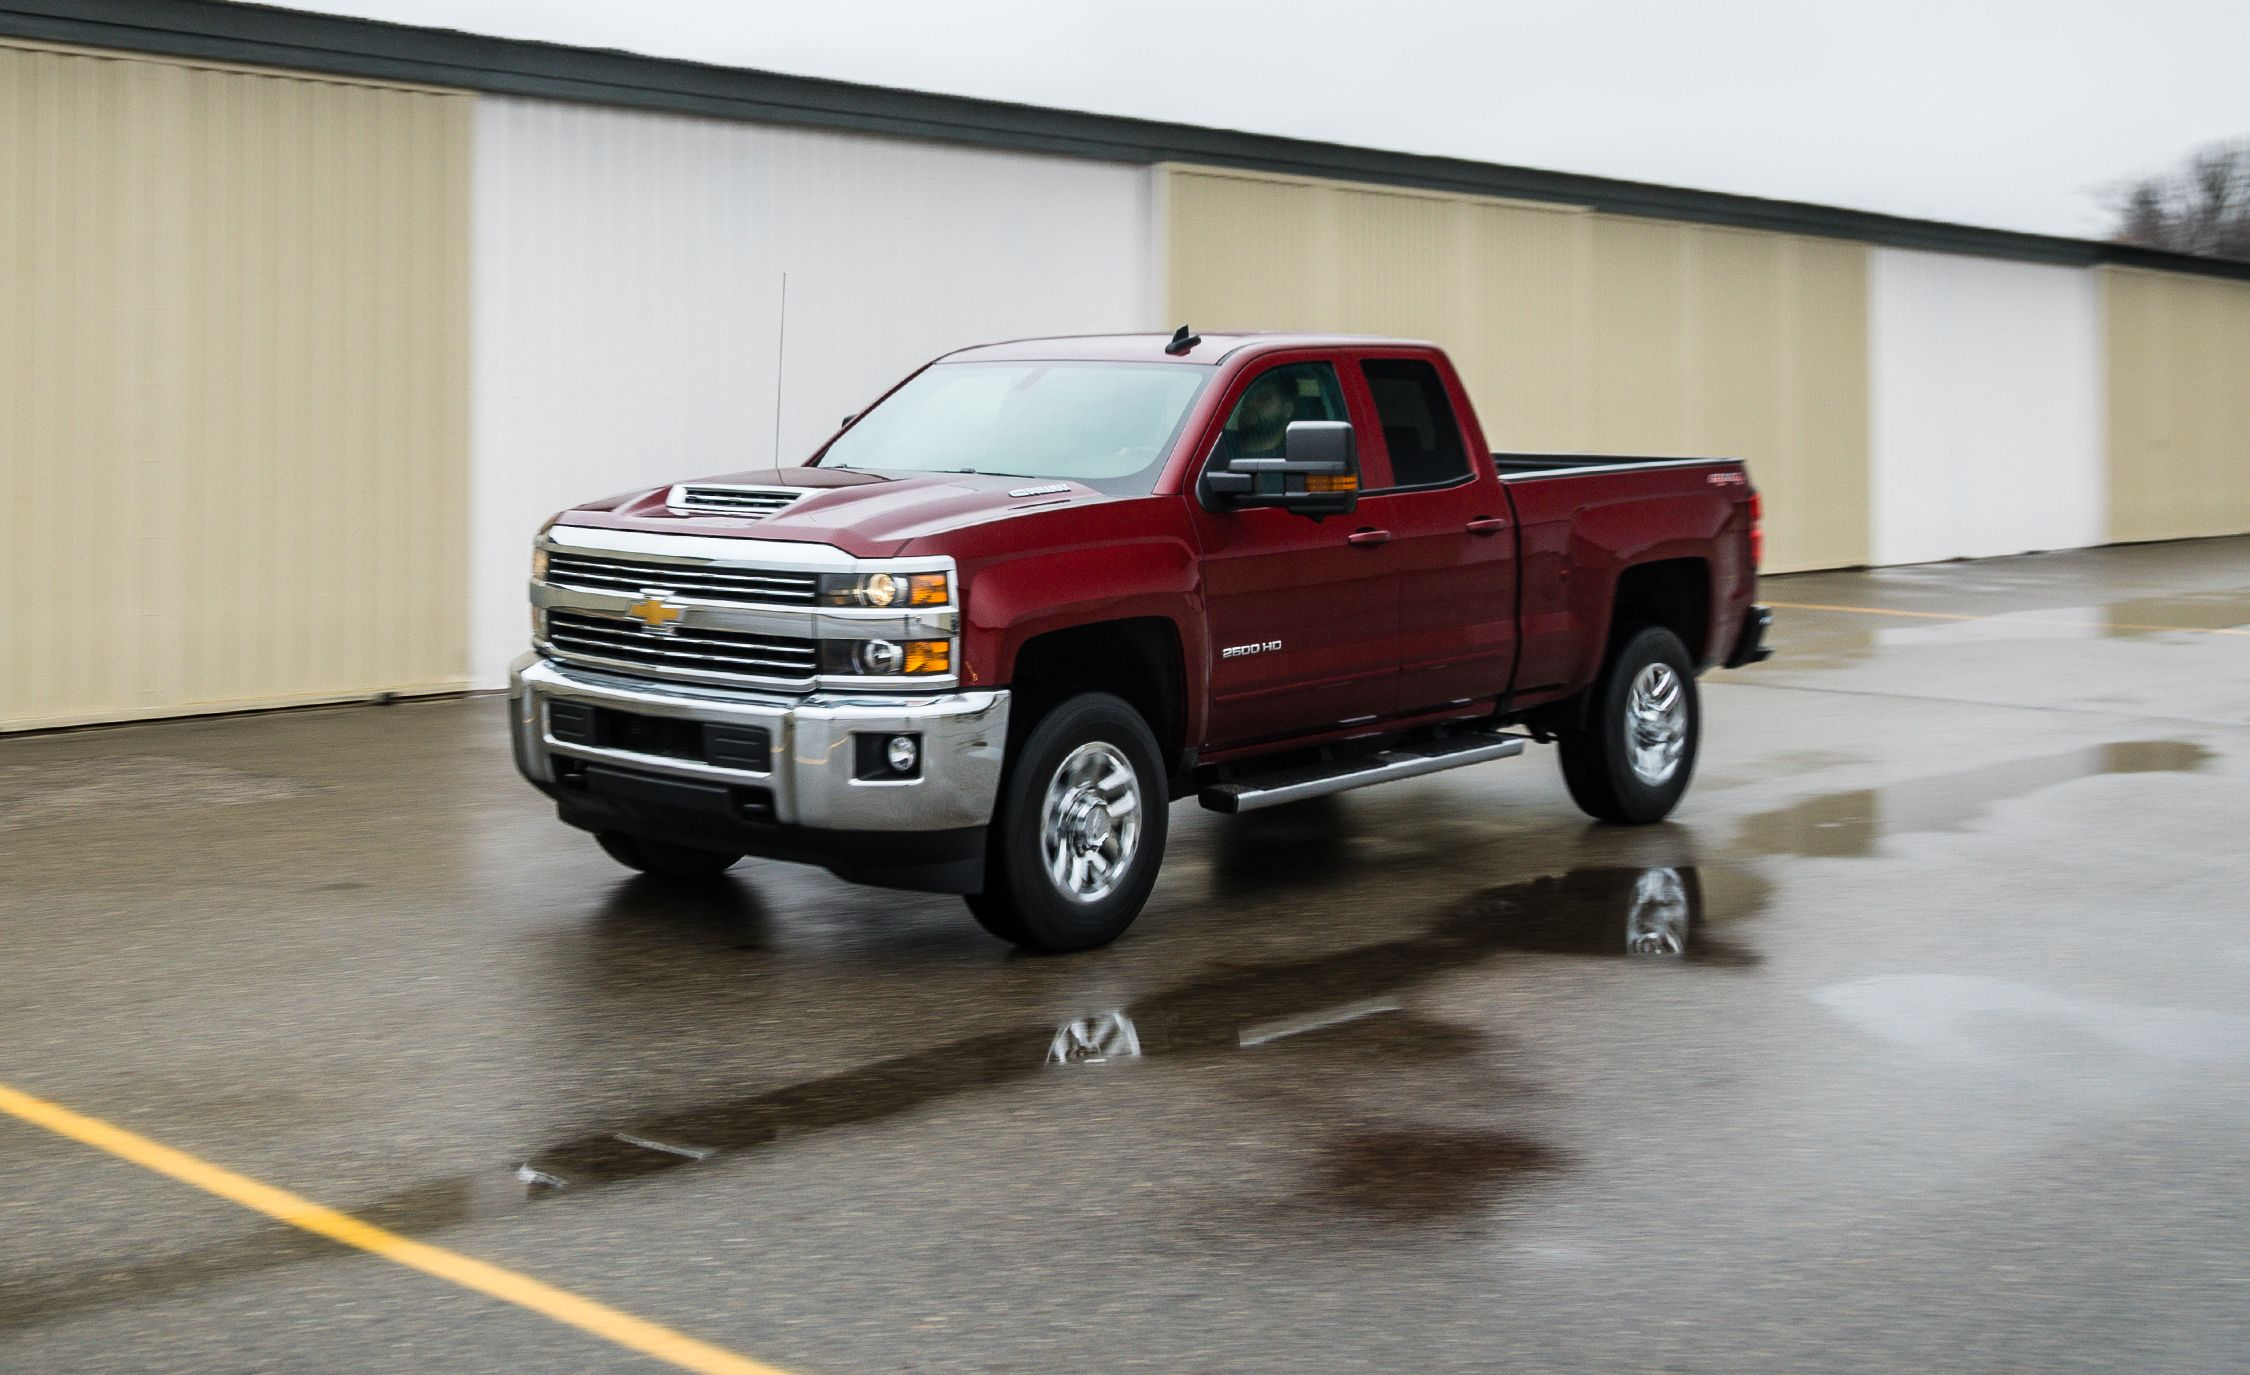 2018 chevrolet silverado 2500hd 3500hd in depth model review Chevrolet Transmission 2018 chevrolet silverado 2500hd 3500hd